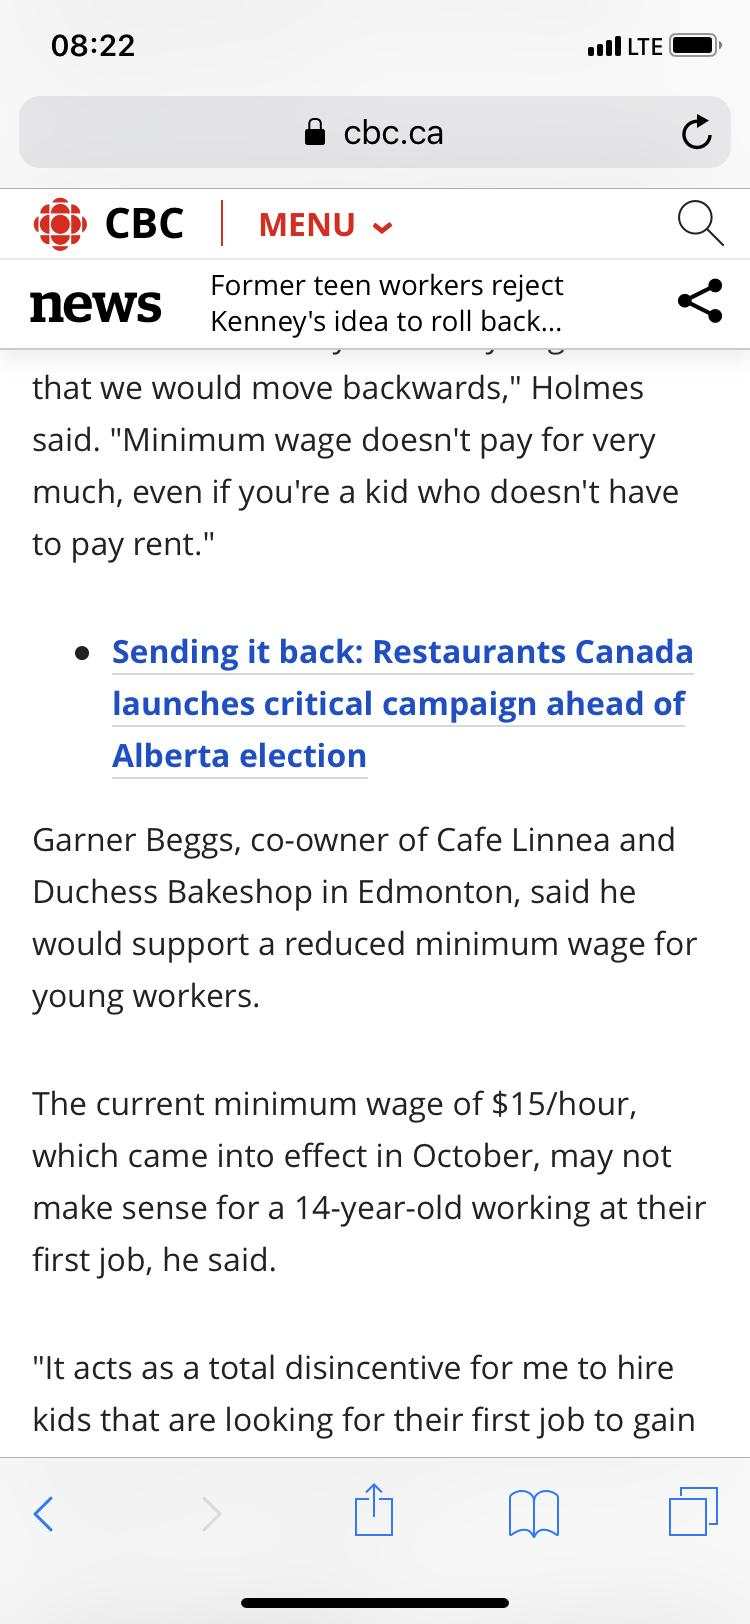 Lvl 10 Catomancer On Twitter I Really Cannot Support Any Local Restaurant Calling For Lower Youth Wages Especially In Light Of J Kenney Calling People With Disabilities People With A Modest Level Of